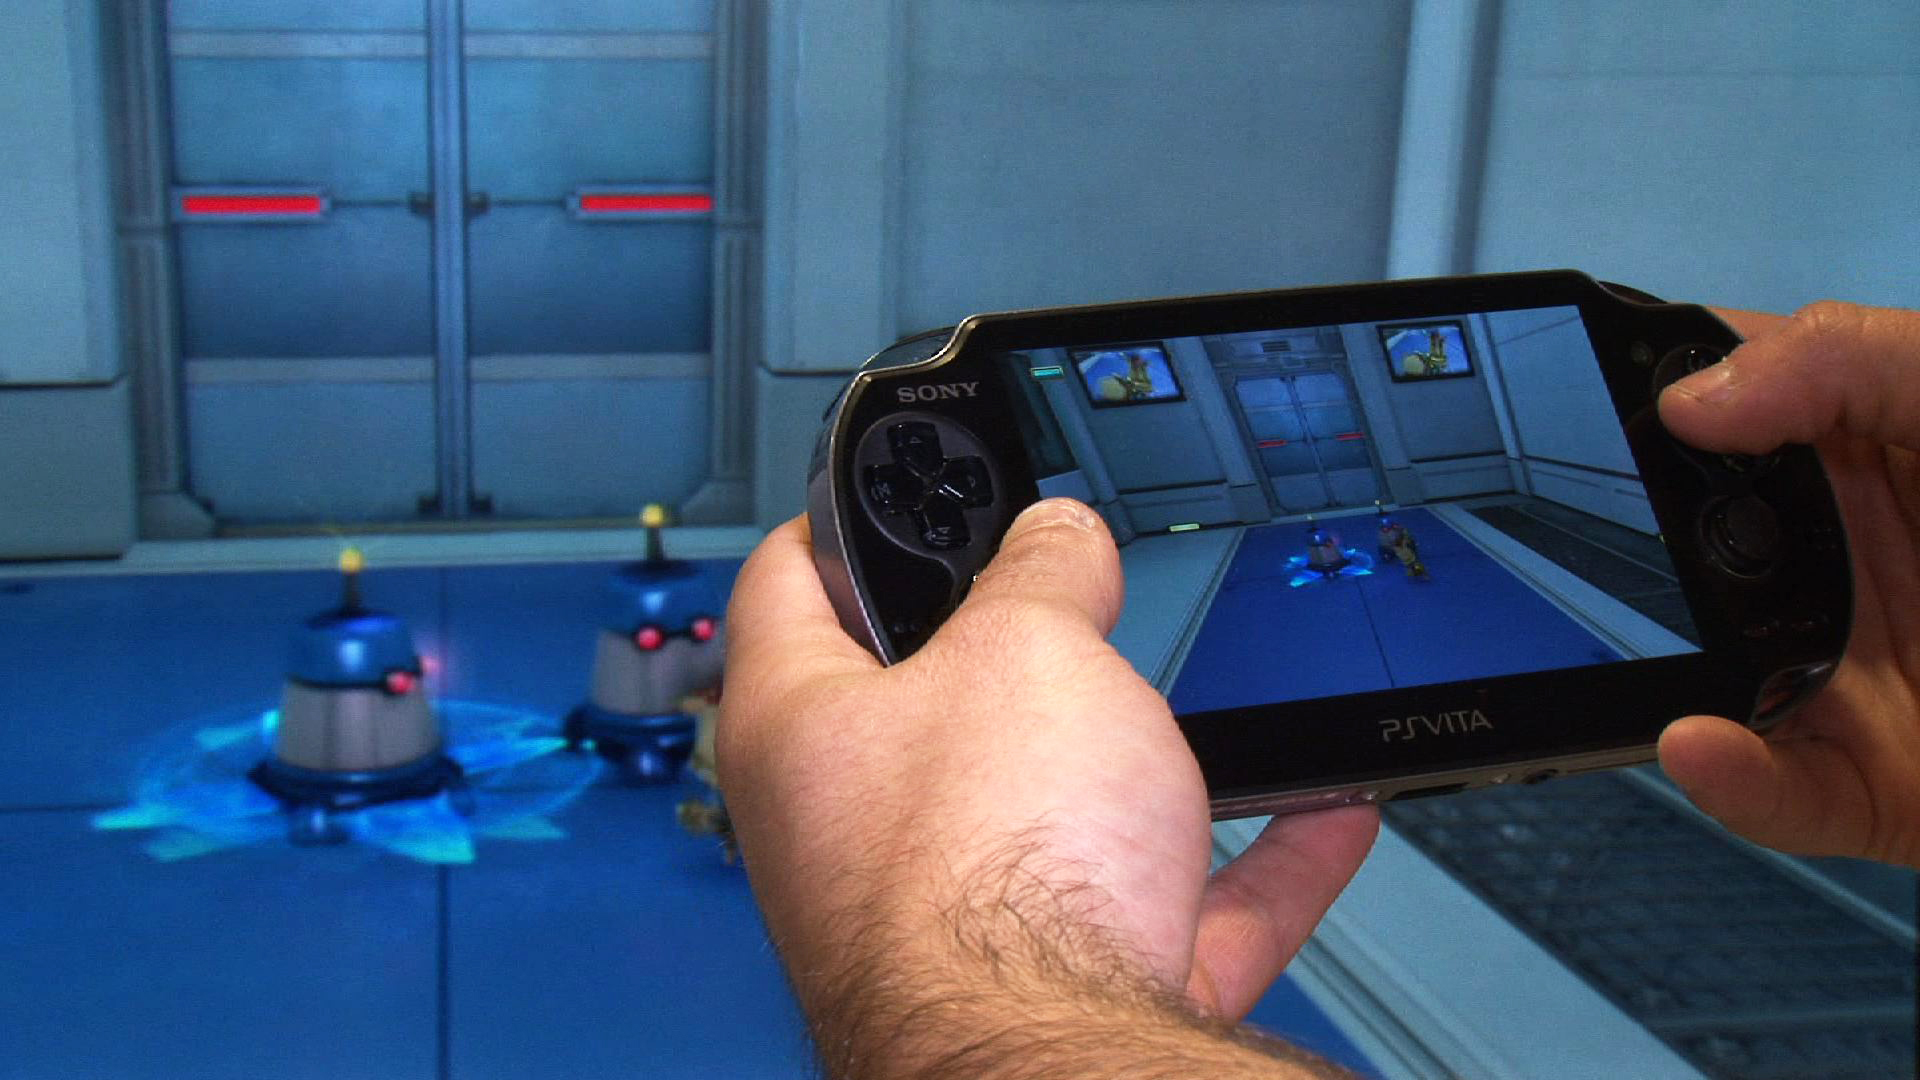 Video: Stream PS4 games on the PS Vita